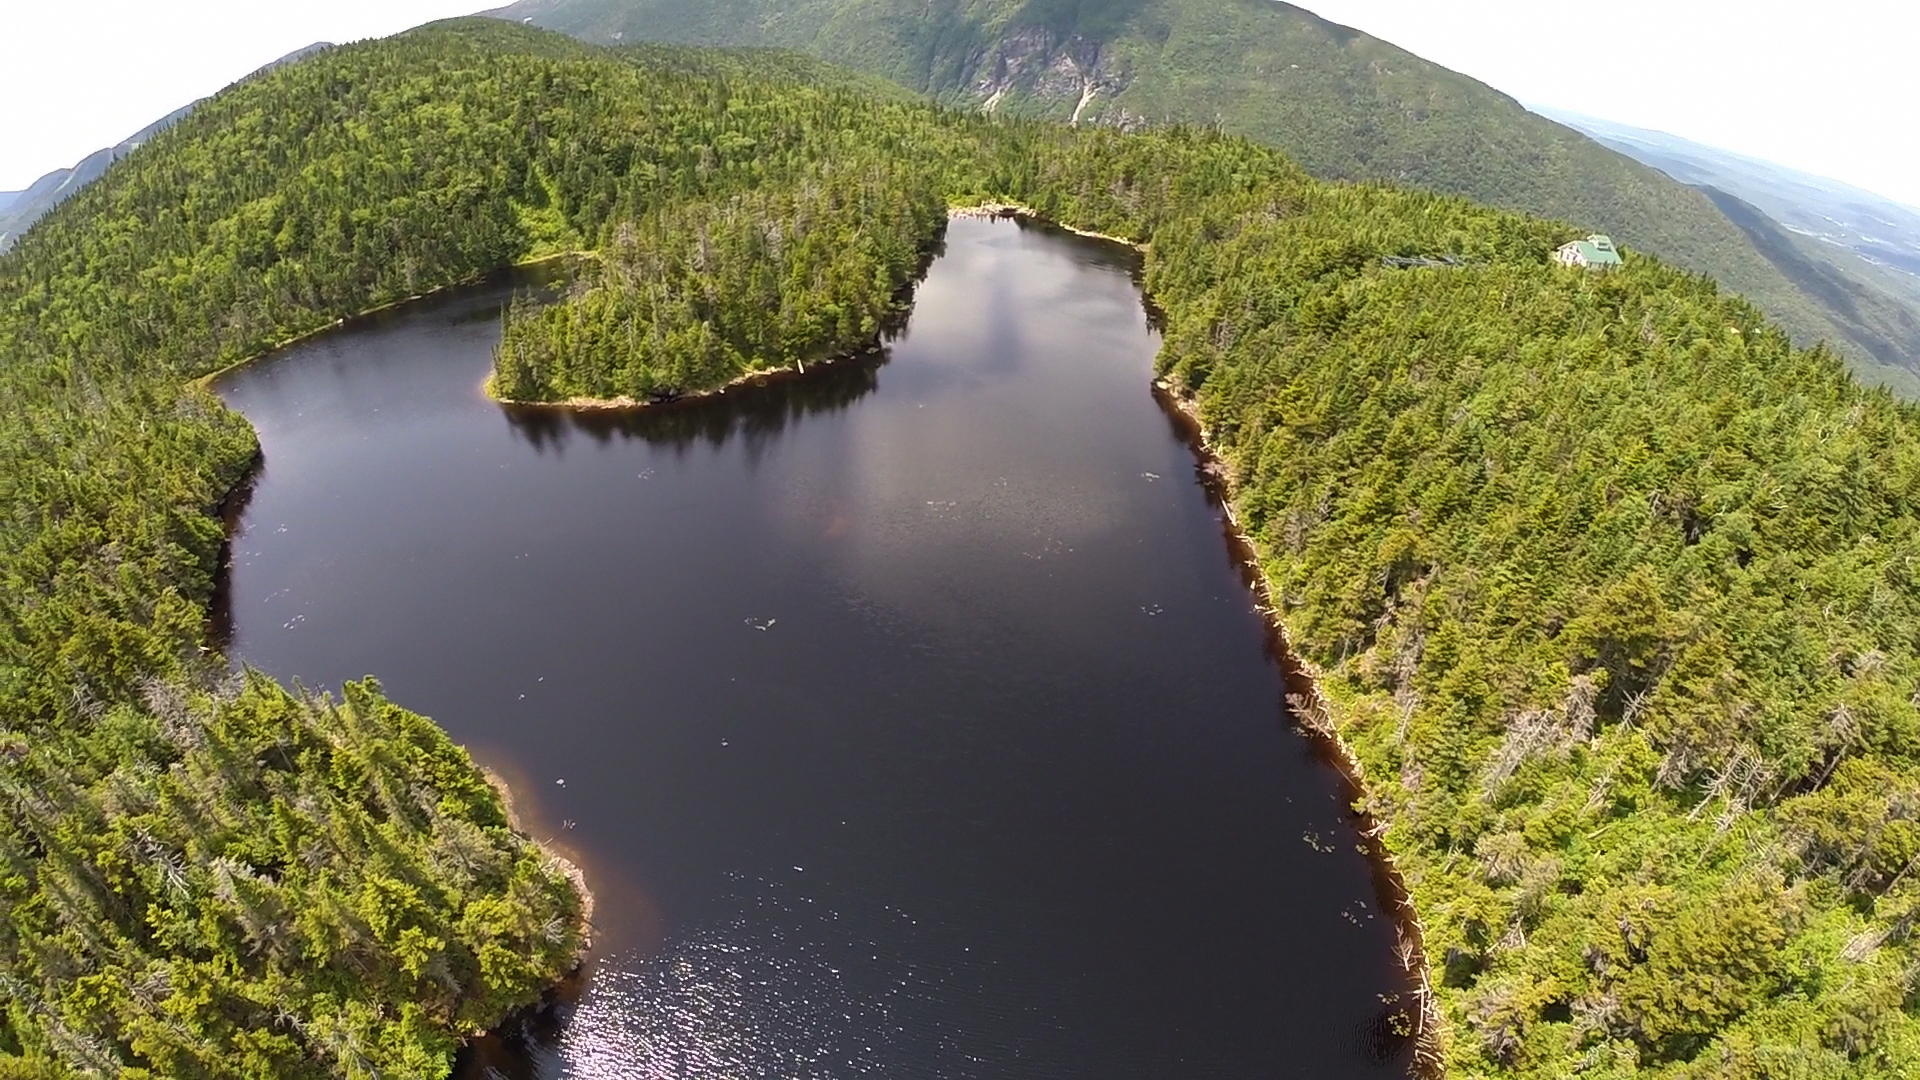 Aerial view of Sterling Pond [Smuggler's Notch, VT]